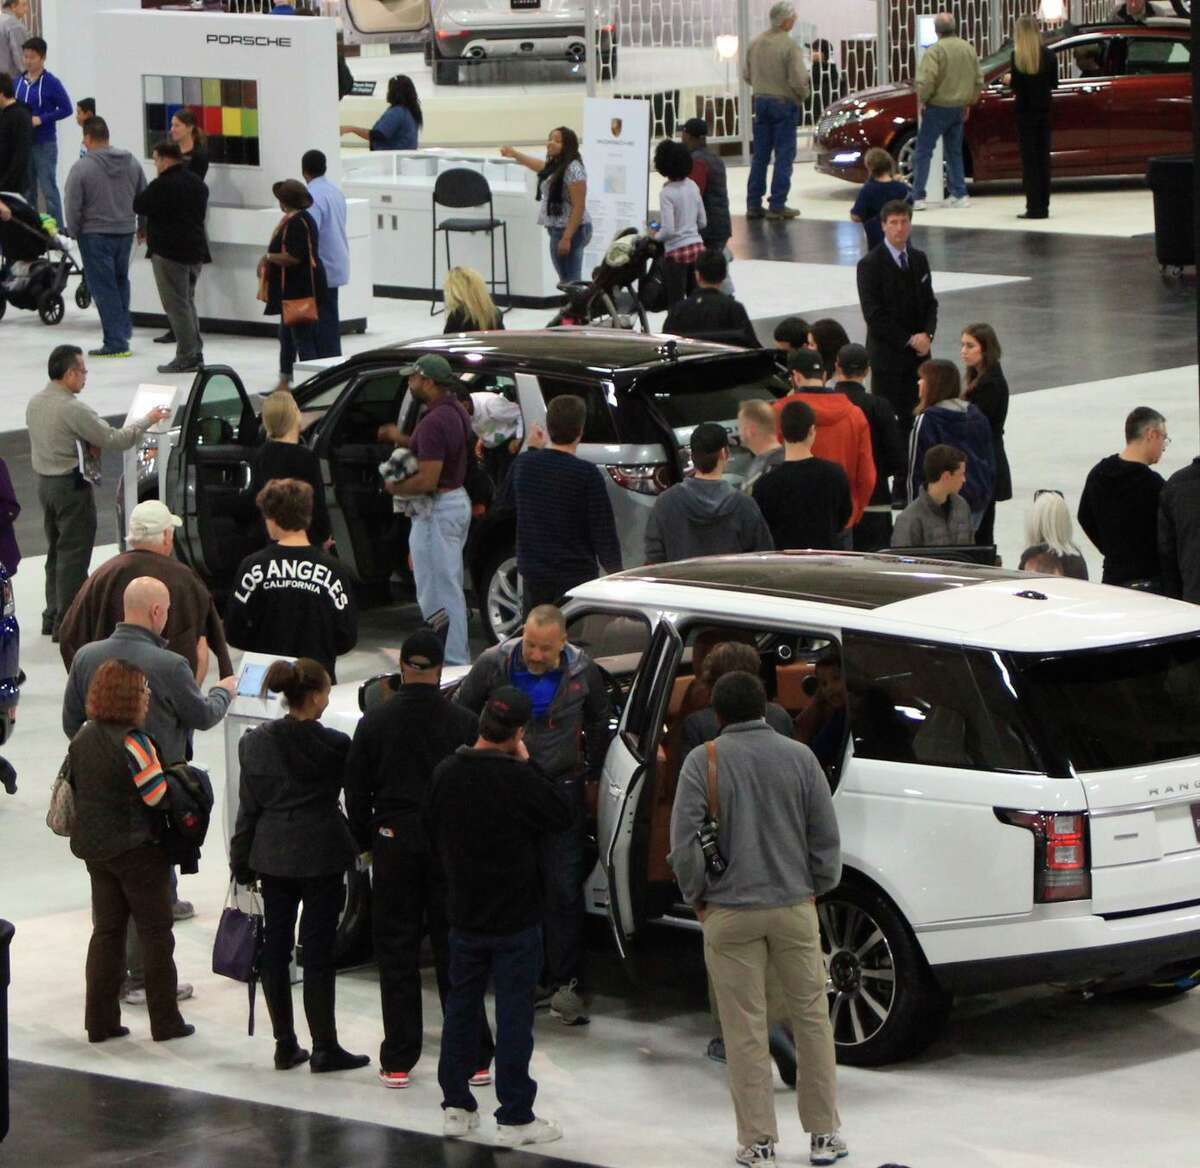 The San Francisco Chronicle's 62nd annual International Auto Show is the largest auto exhibition in Northern California. The event will feature the newest releases and many 2020 model-year vehicles.